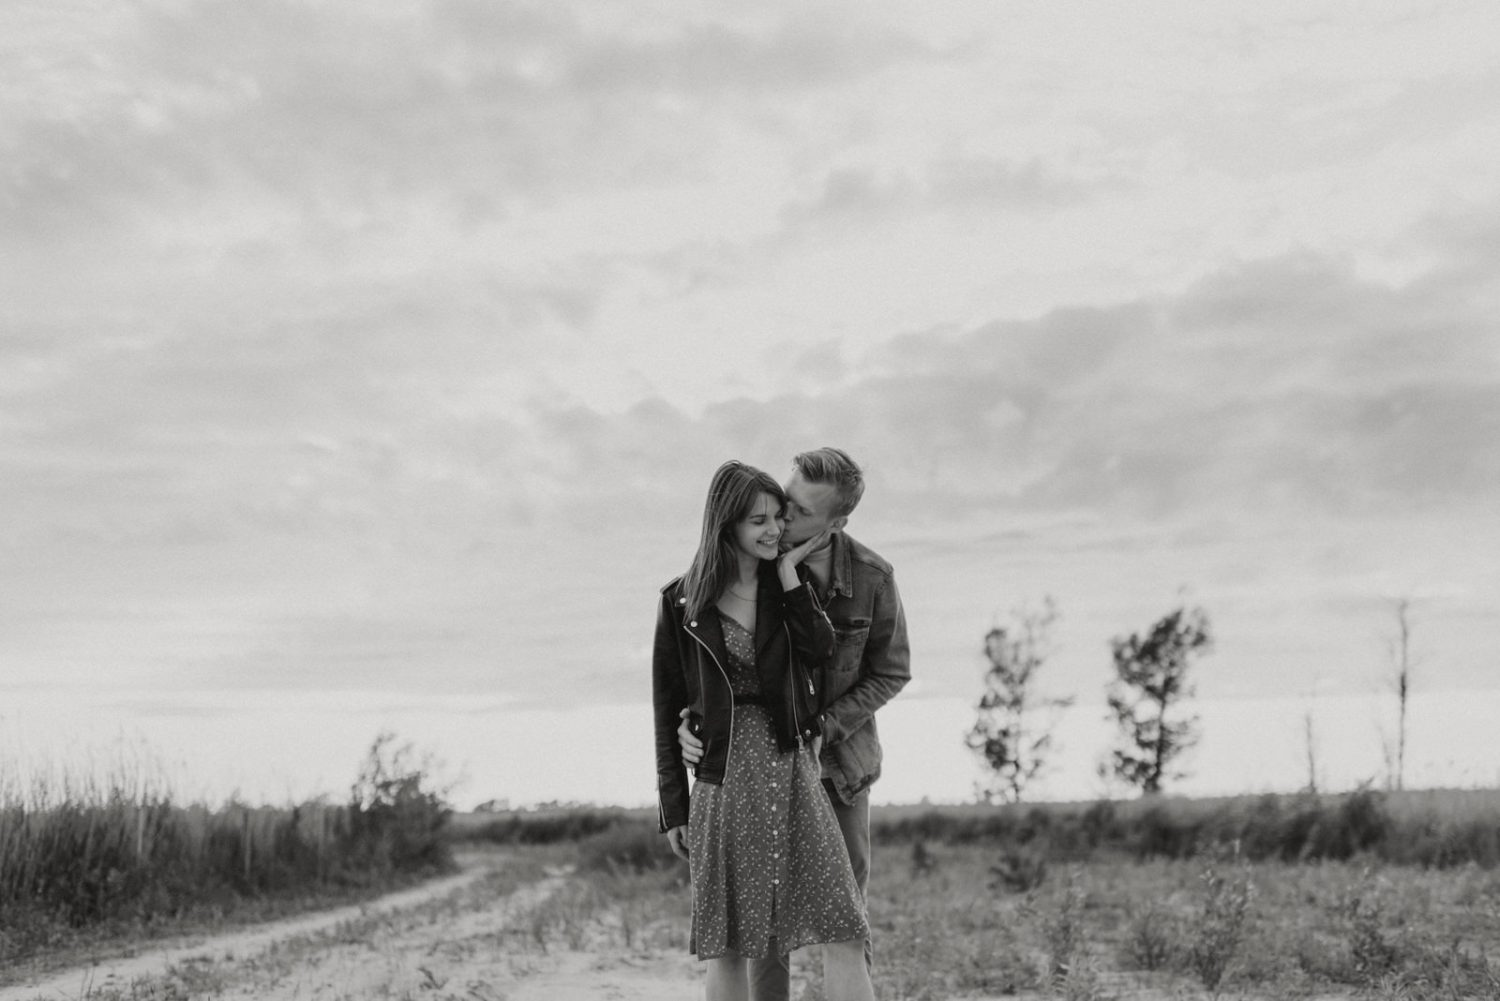 creative-couple-photoshoot-outdoors-by-miks-sels-photography-2